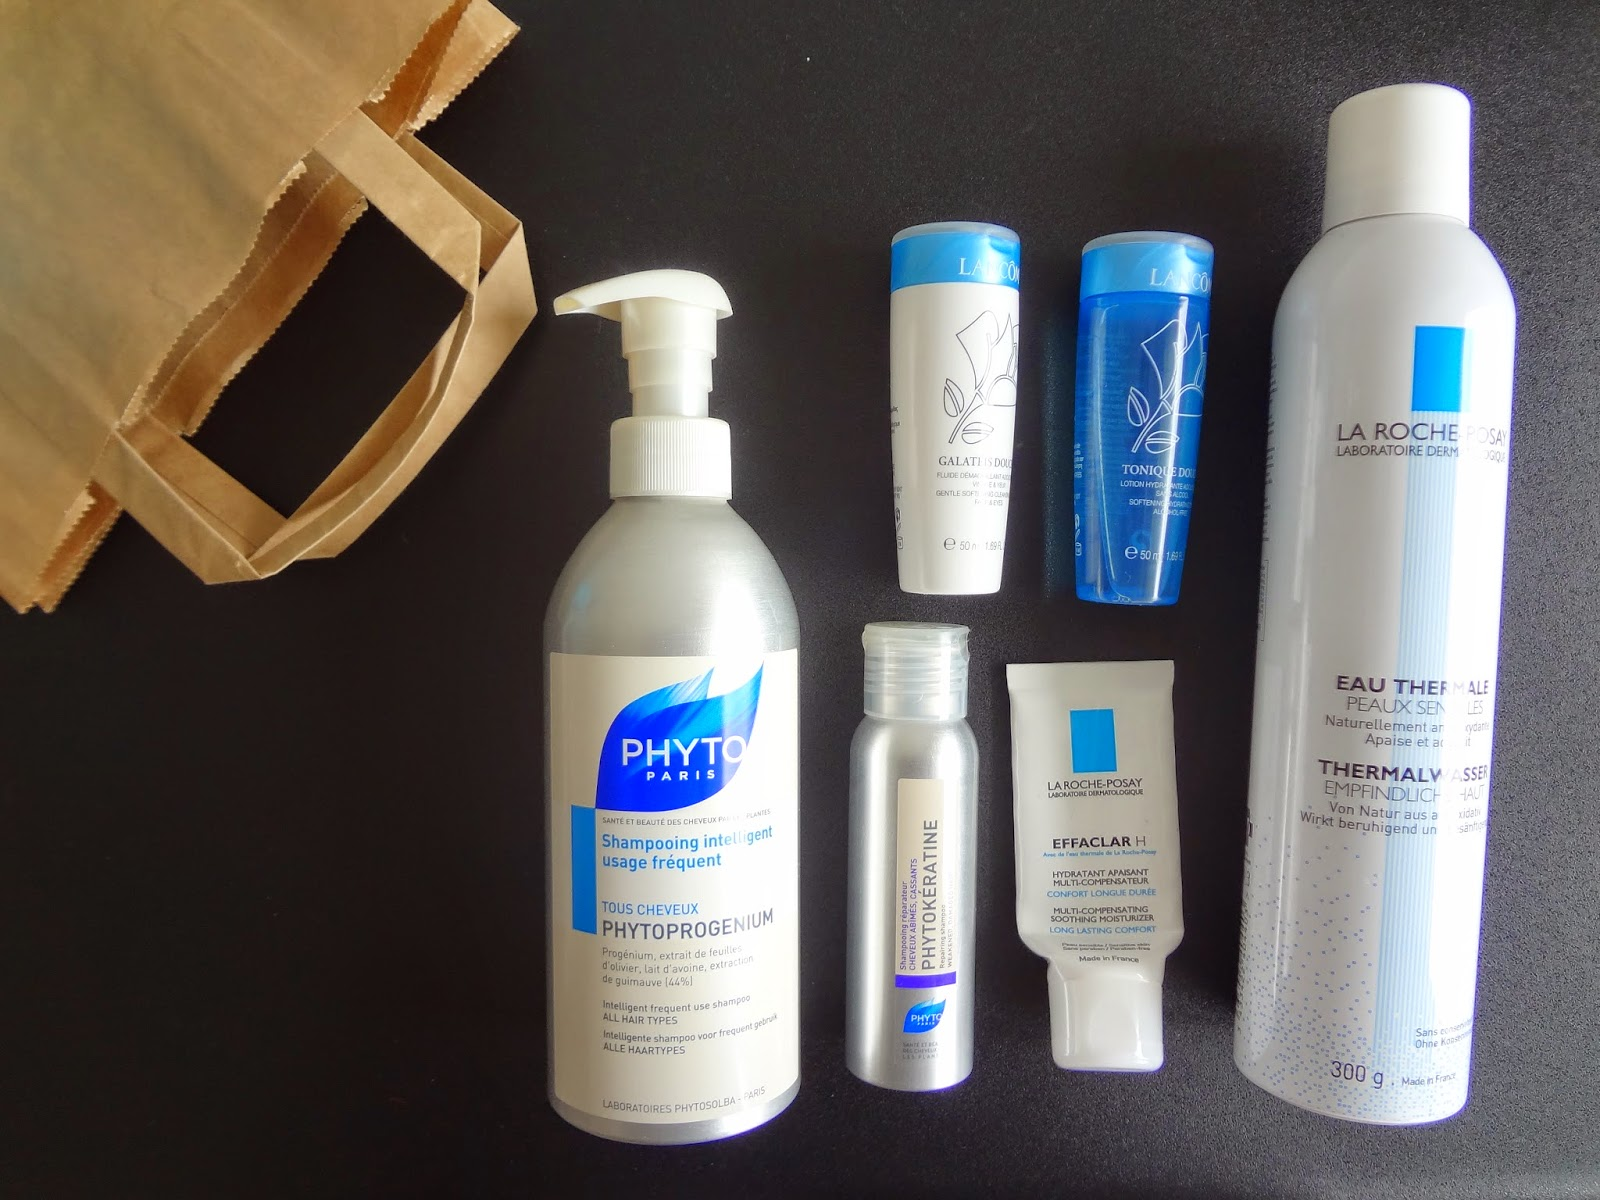 revue-produits-termines-finis-empties-beauty-trash-review-products-phyto-phytoprogenium-shampoing-phytokeratine-hair-lancome-lait-demaquillante-galateis-tonique-douceur-la-rcohe-posay-effaclar-h-hydratant-apaisant-compensateur-eau-thermale-peaux-sensibles